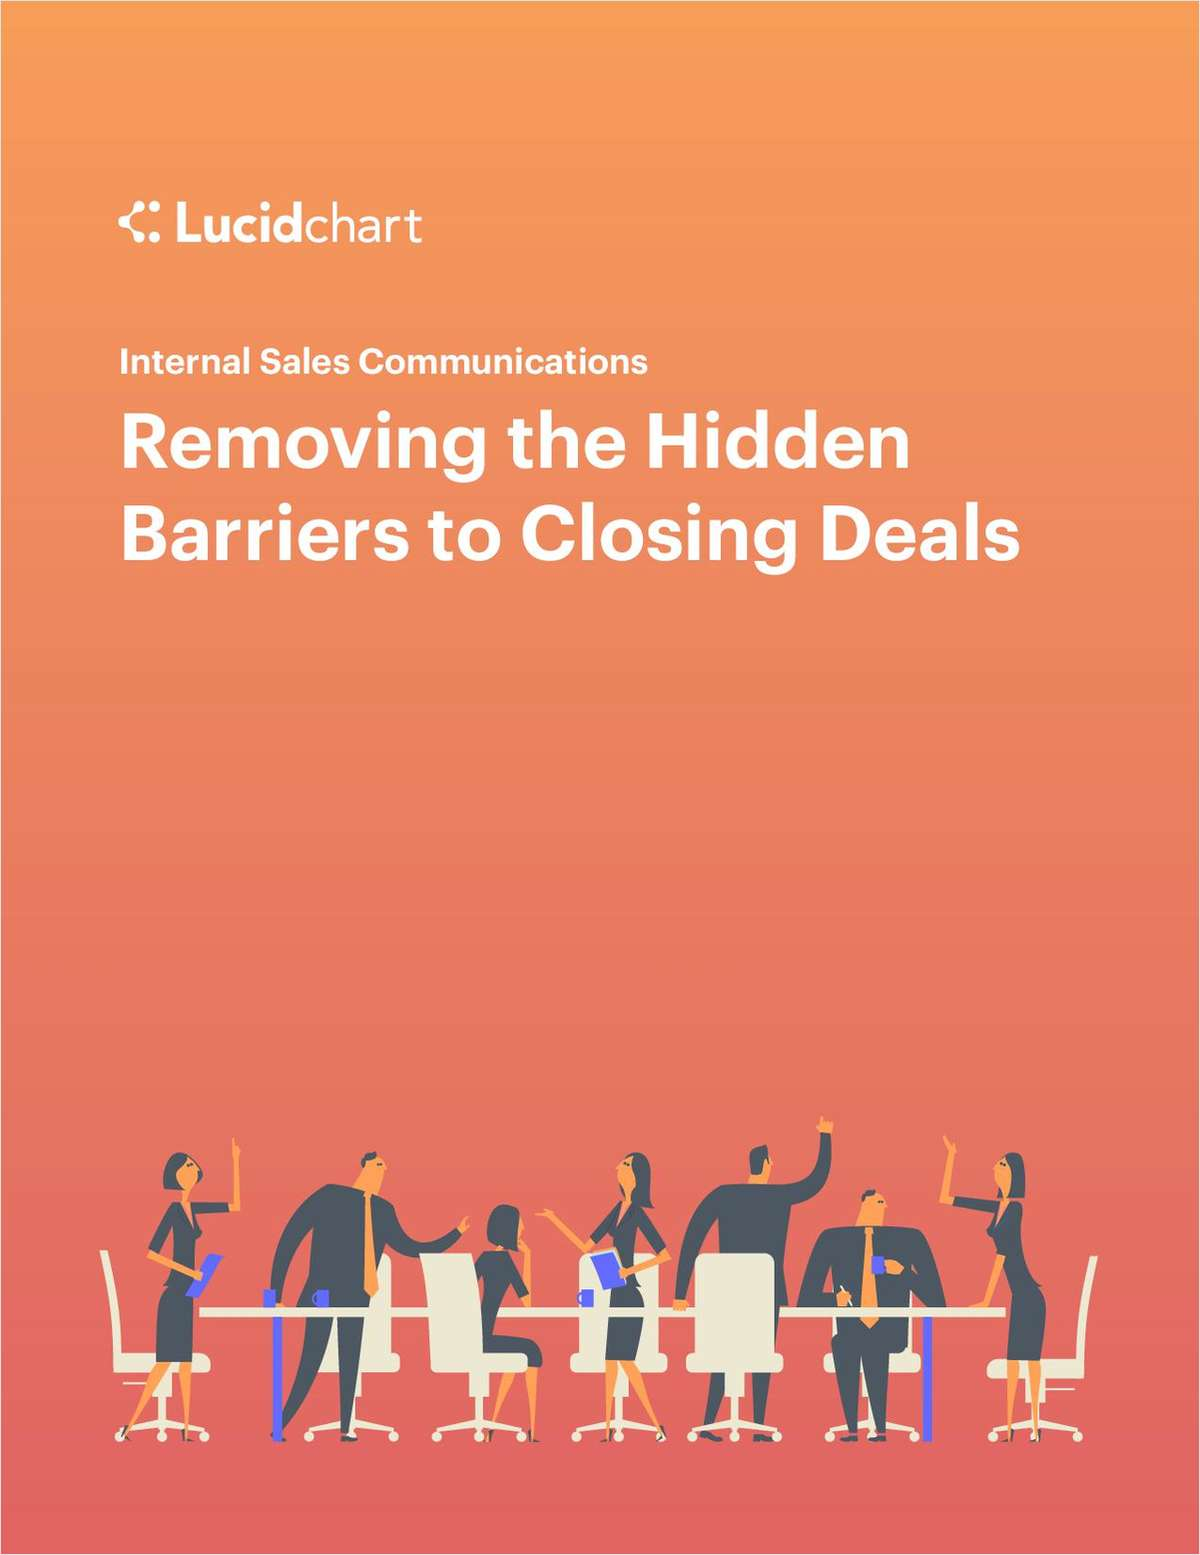 Internal Sales Communications: Removing the Hidden Barriers to Closing Deals